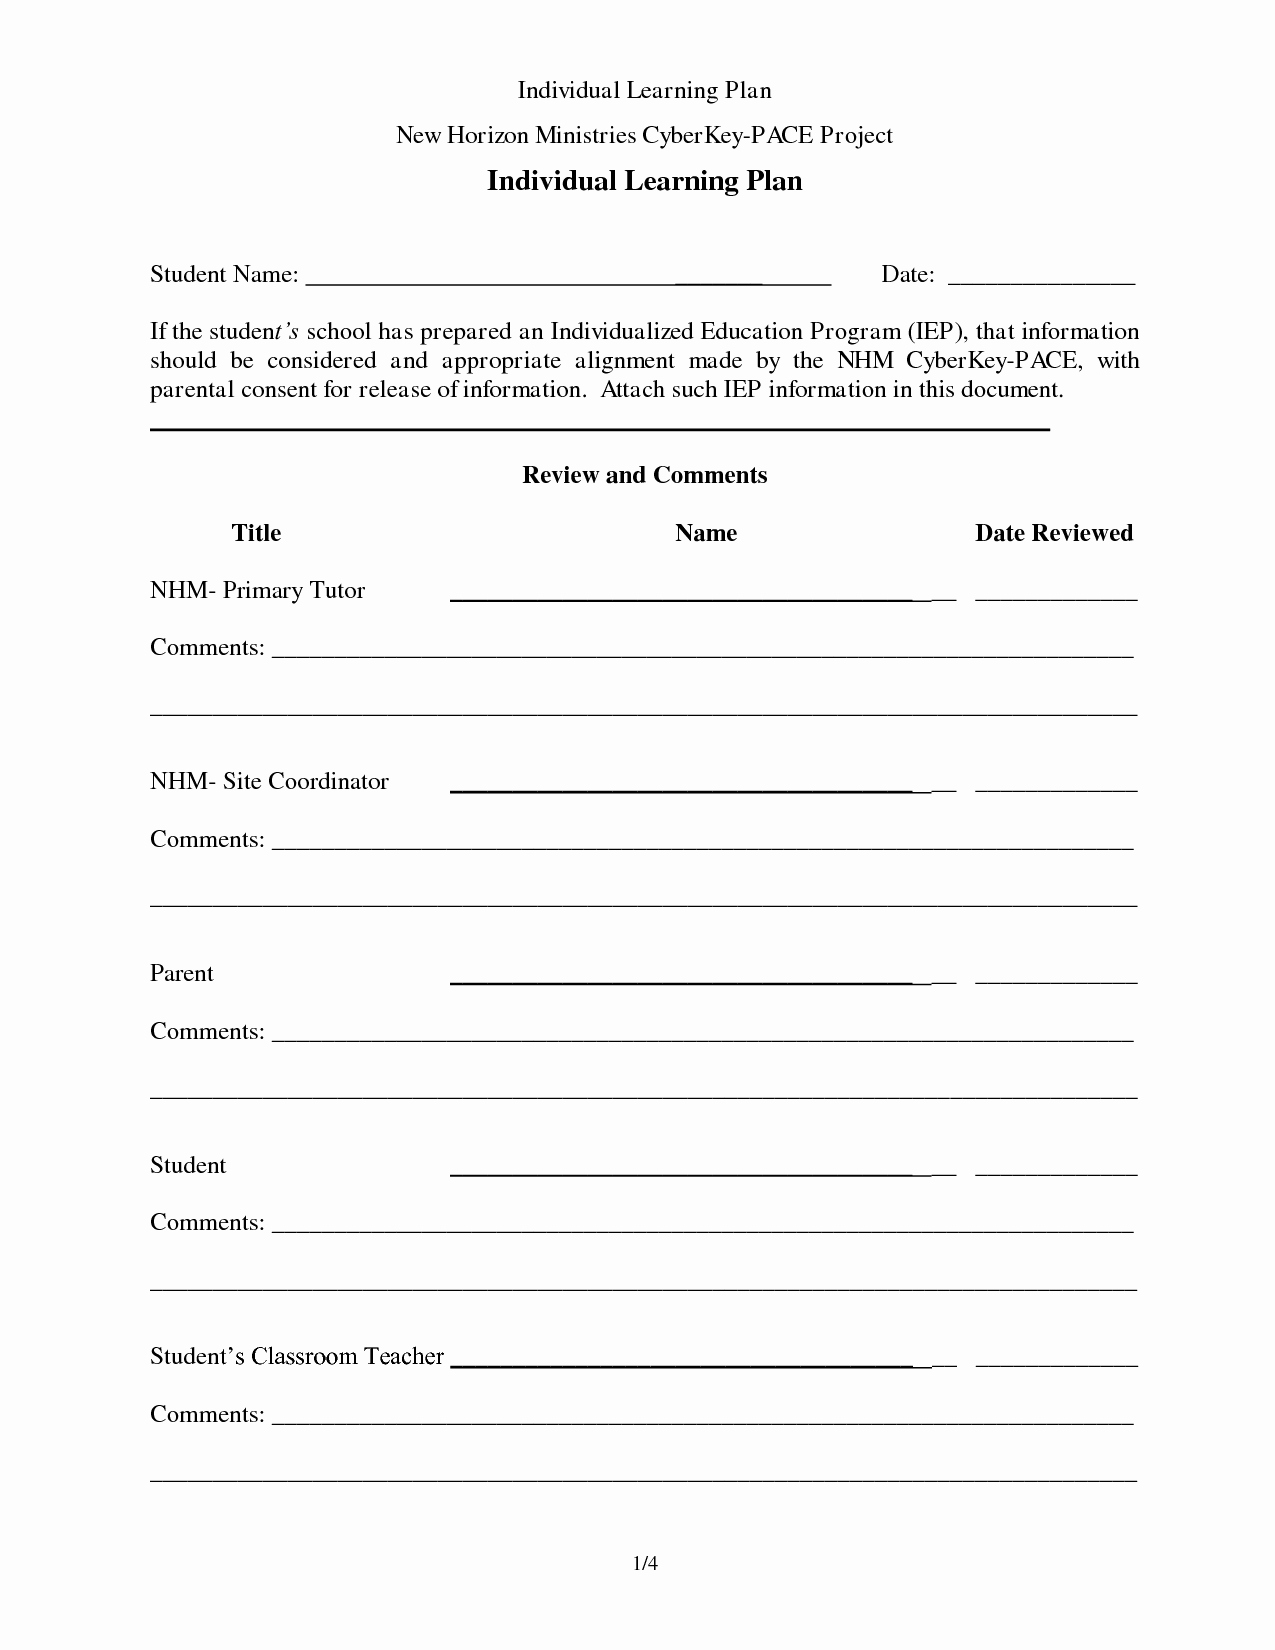 Personal Learning Plan Example New Individual Learning Plan Template Success